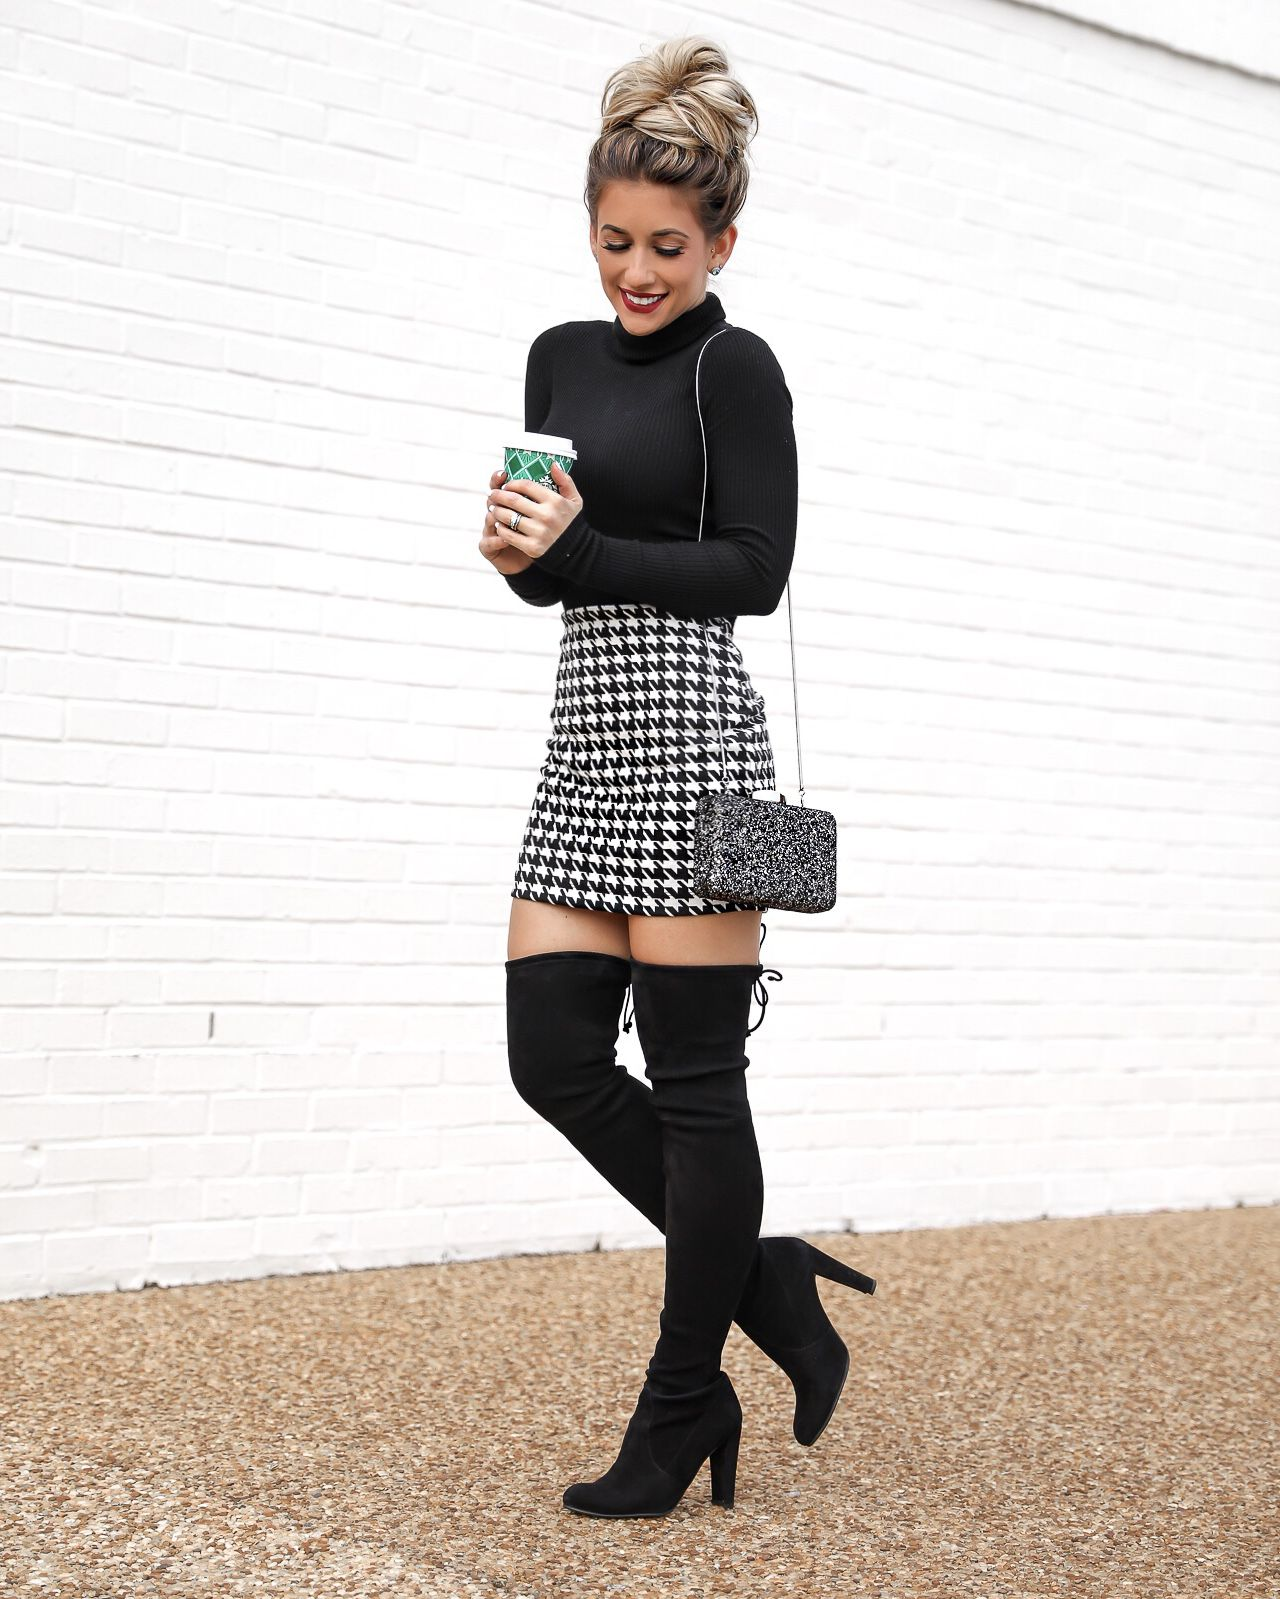 Styling Ideas for Christmas Skirt Outfits